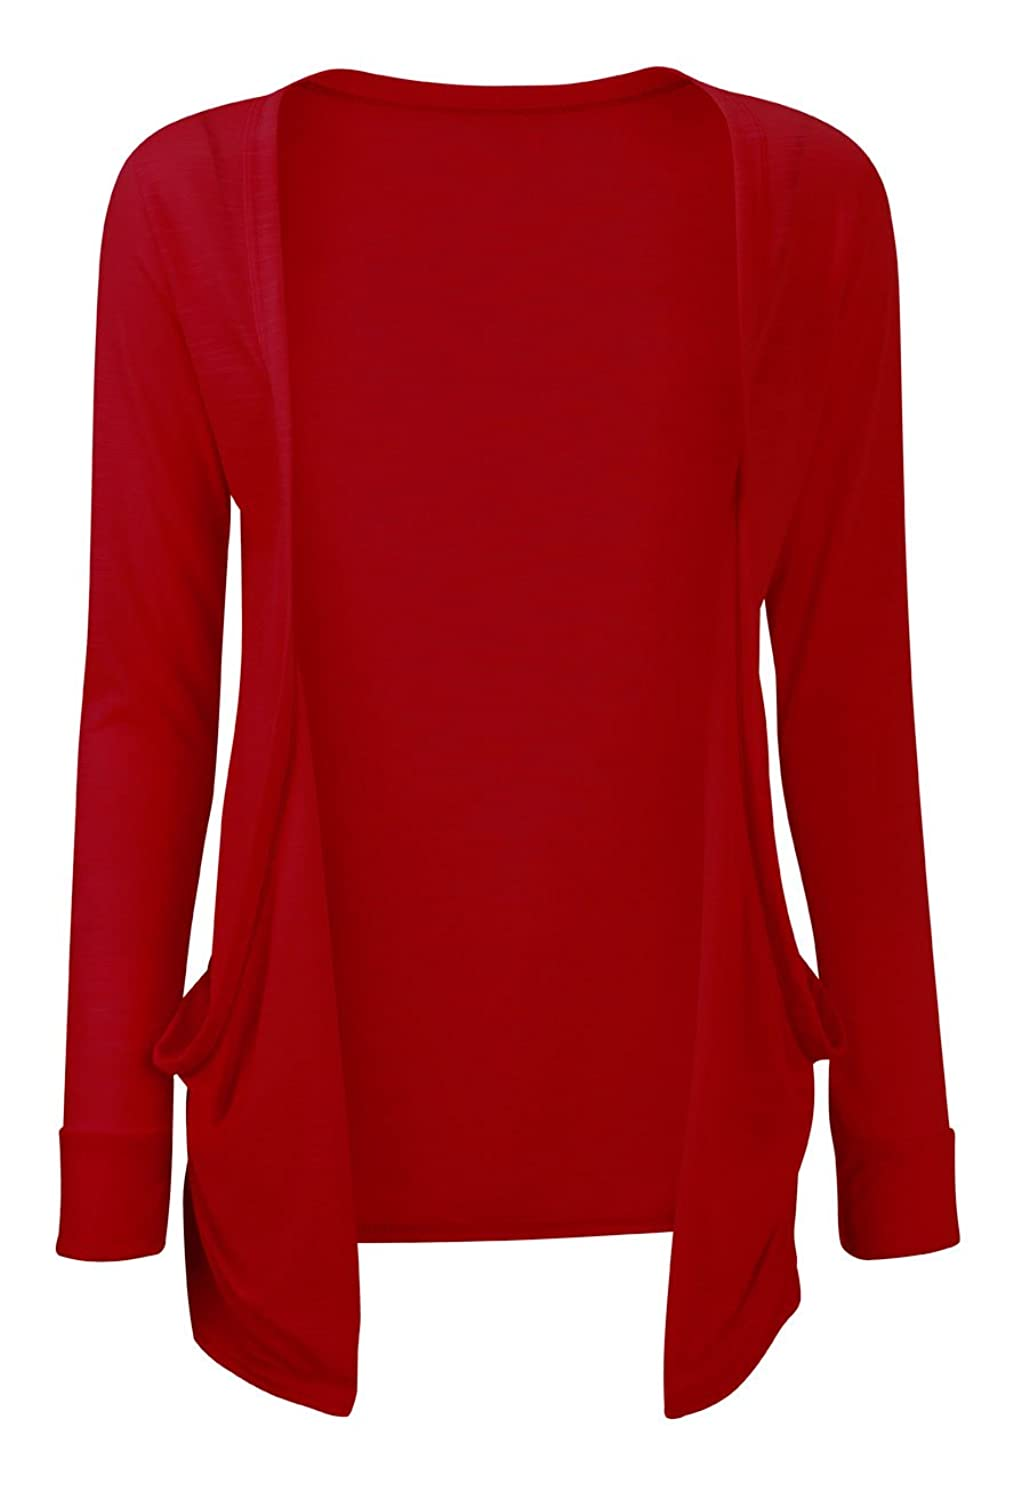 Ladies' Boyfriend Cardigan with Pockets in RED: Amazon.co.uk: Clothing